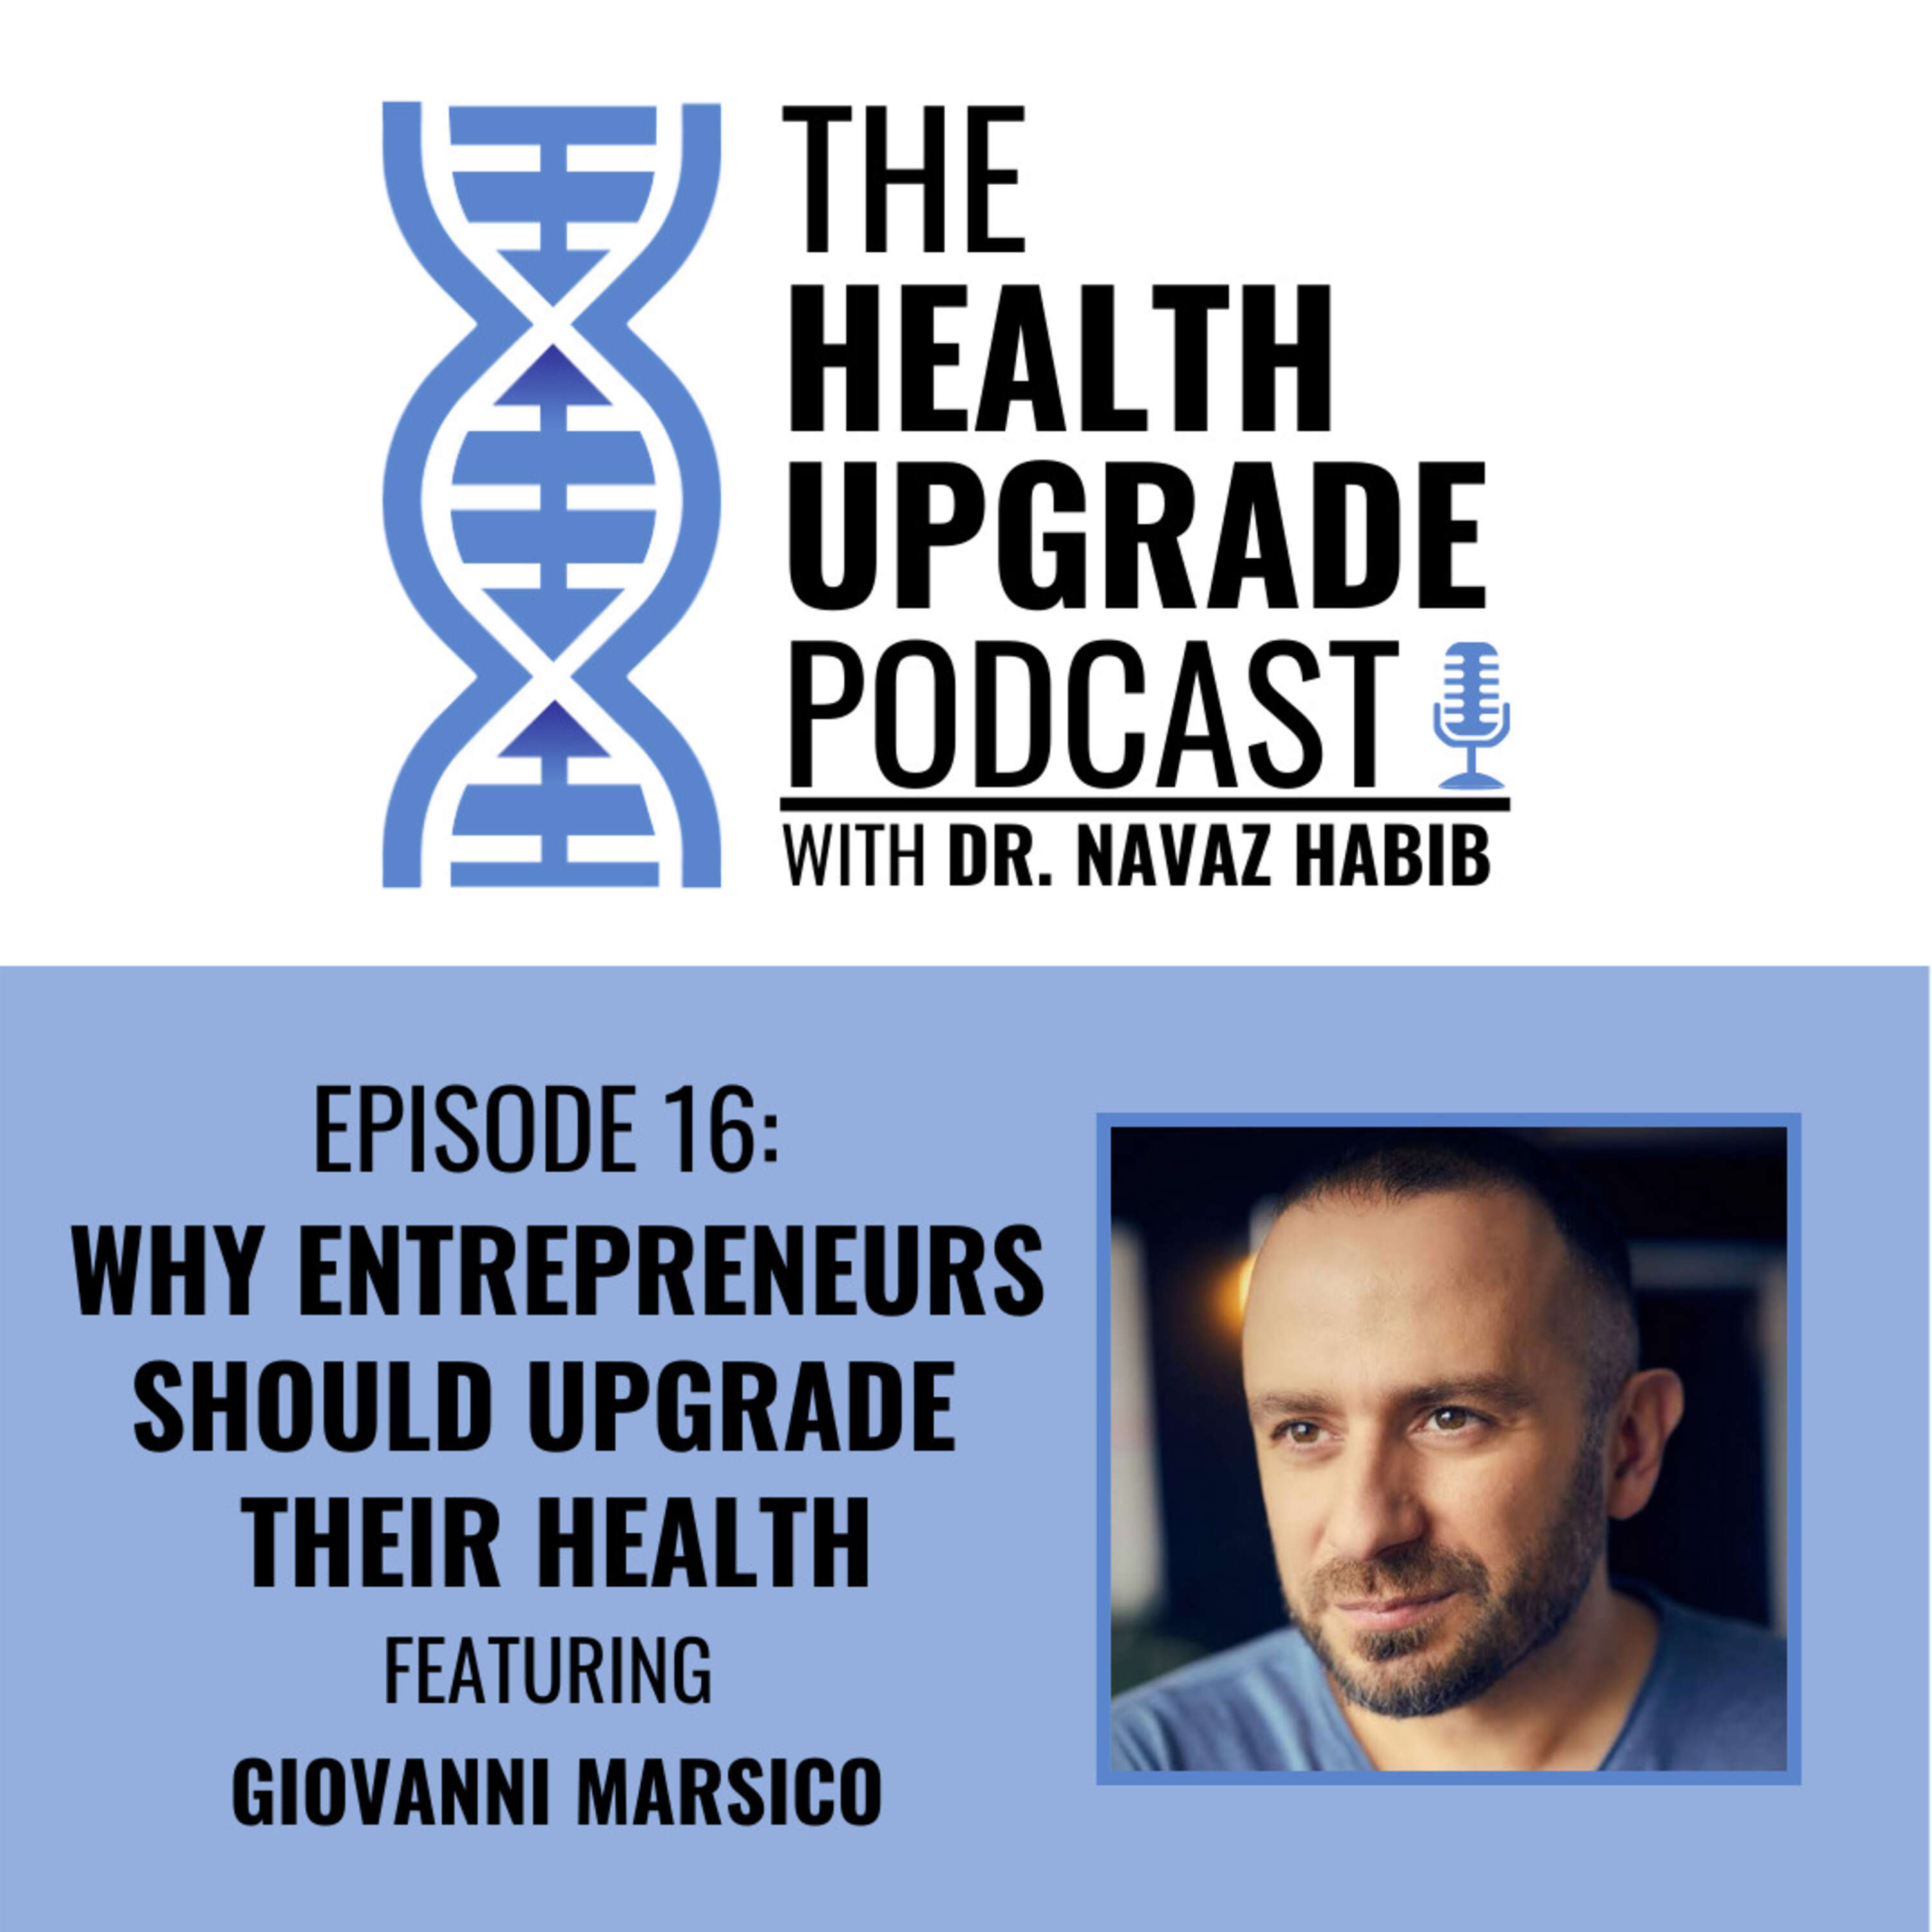 Why entrepreneurs should upgrade their health - featuring Giovanni Marsico